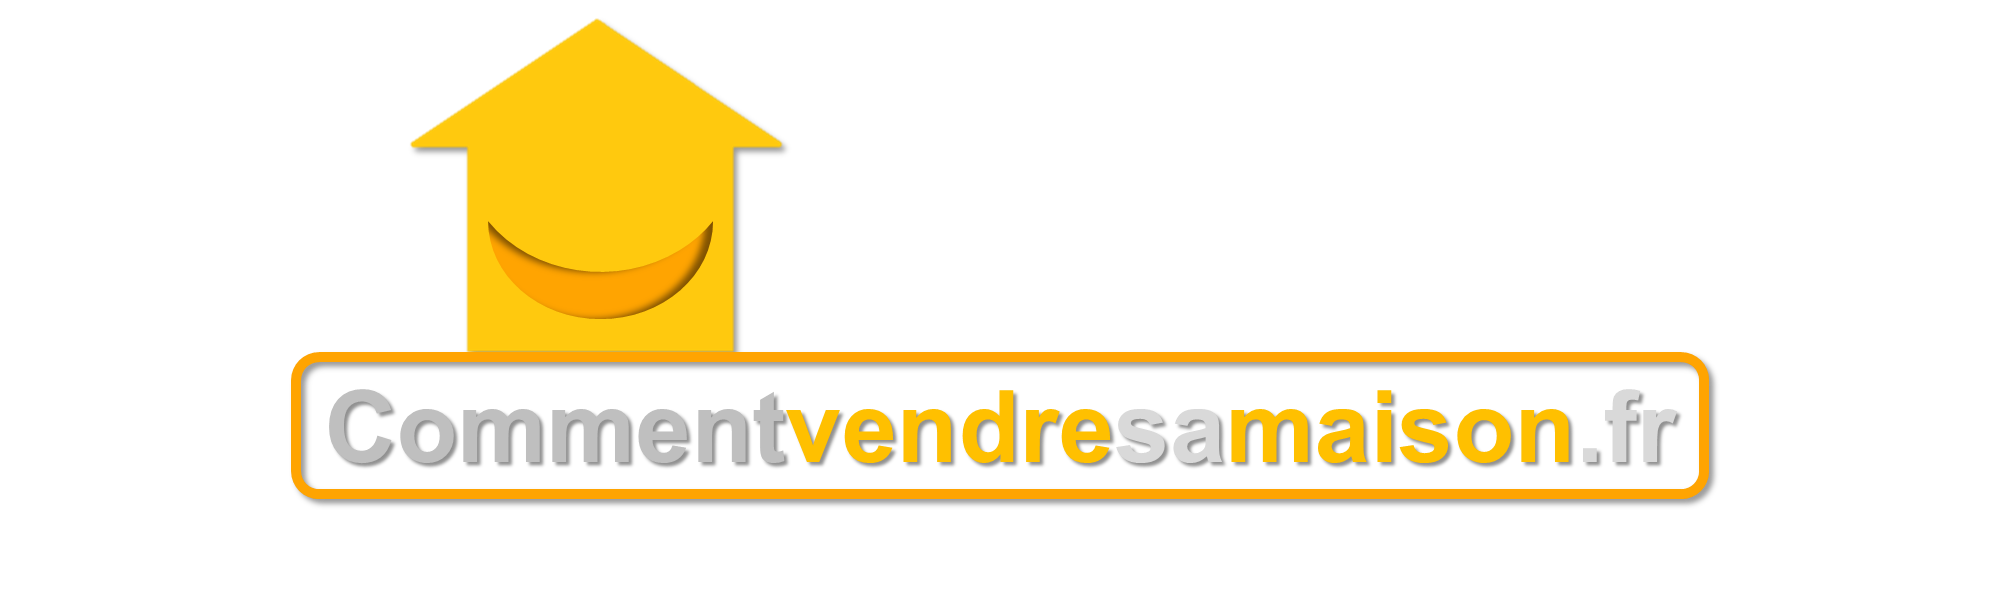 comment vendre sa maison coaching immobilier toulouse